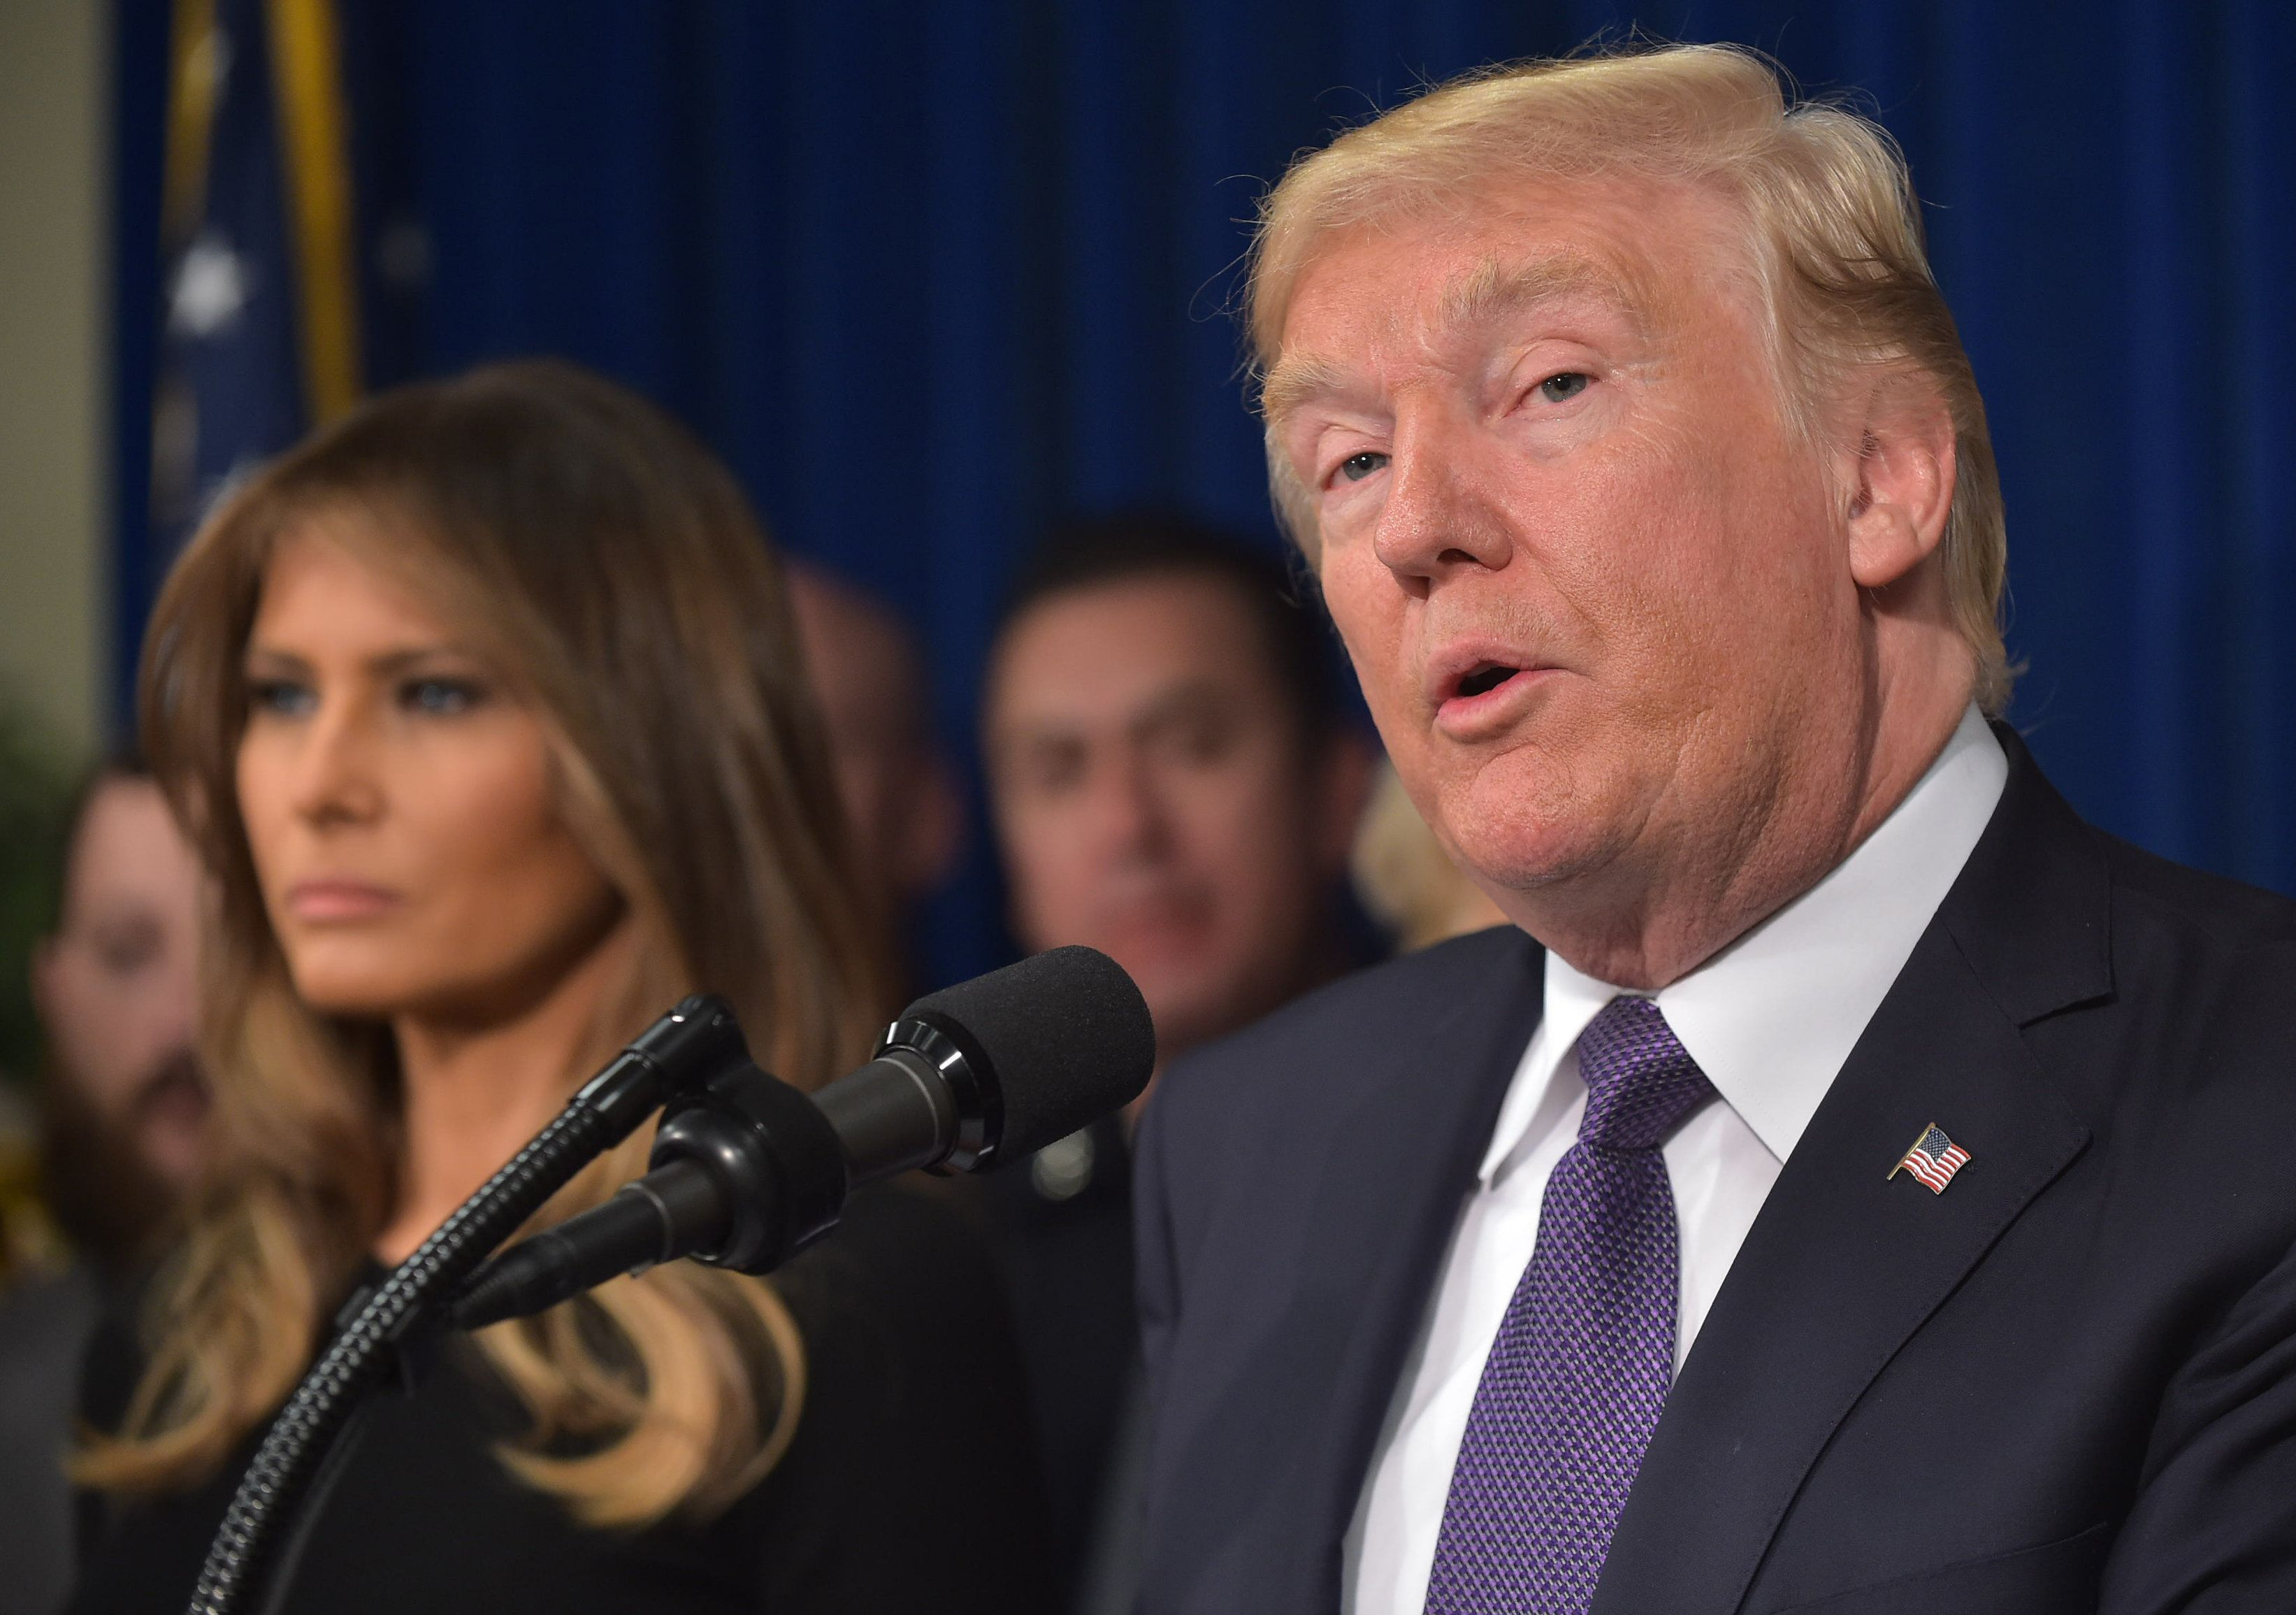 US President Donald Trump speaks as First Lady Melania Trump (L) looks on as he visits the Metropolitan Police Department command centre in Las Vegas, Nevada on October 4, 2017.   / AFP PHOTO / MANDEL NGAN        (Photo credit should read MANDEL NGAN/AFP/Getty Images)